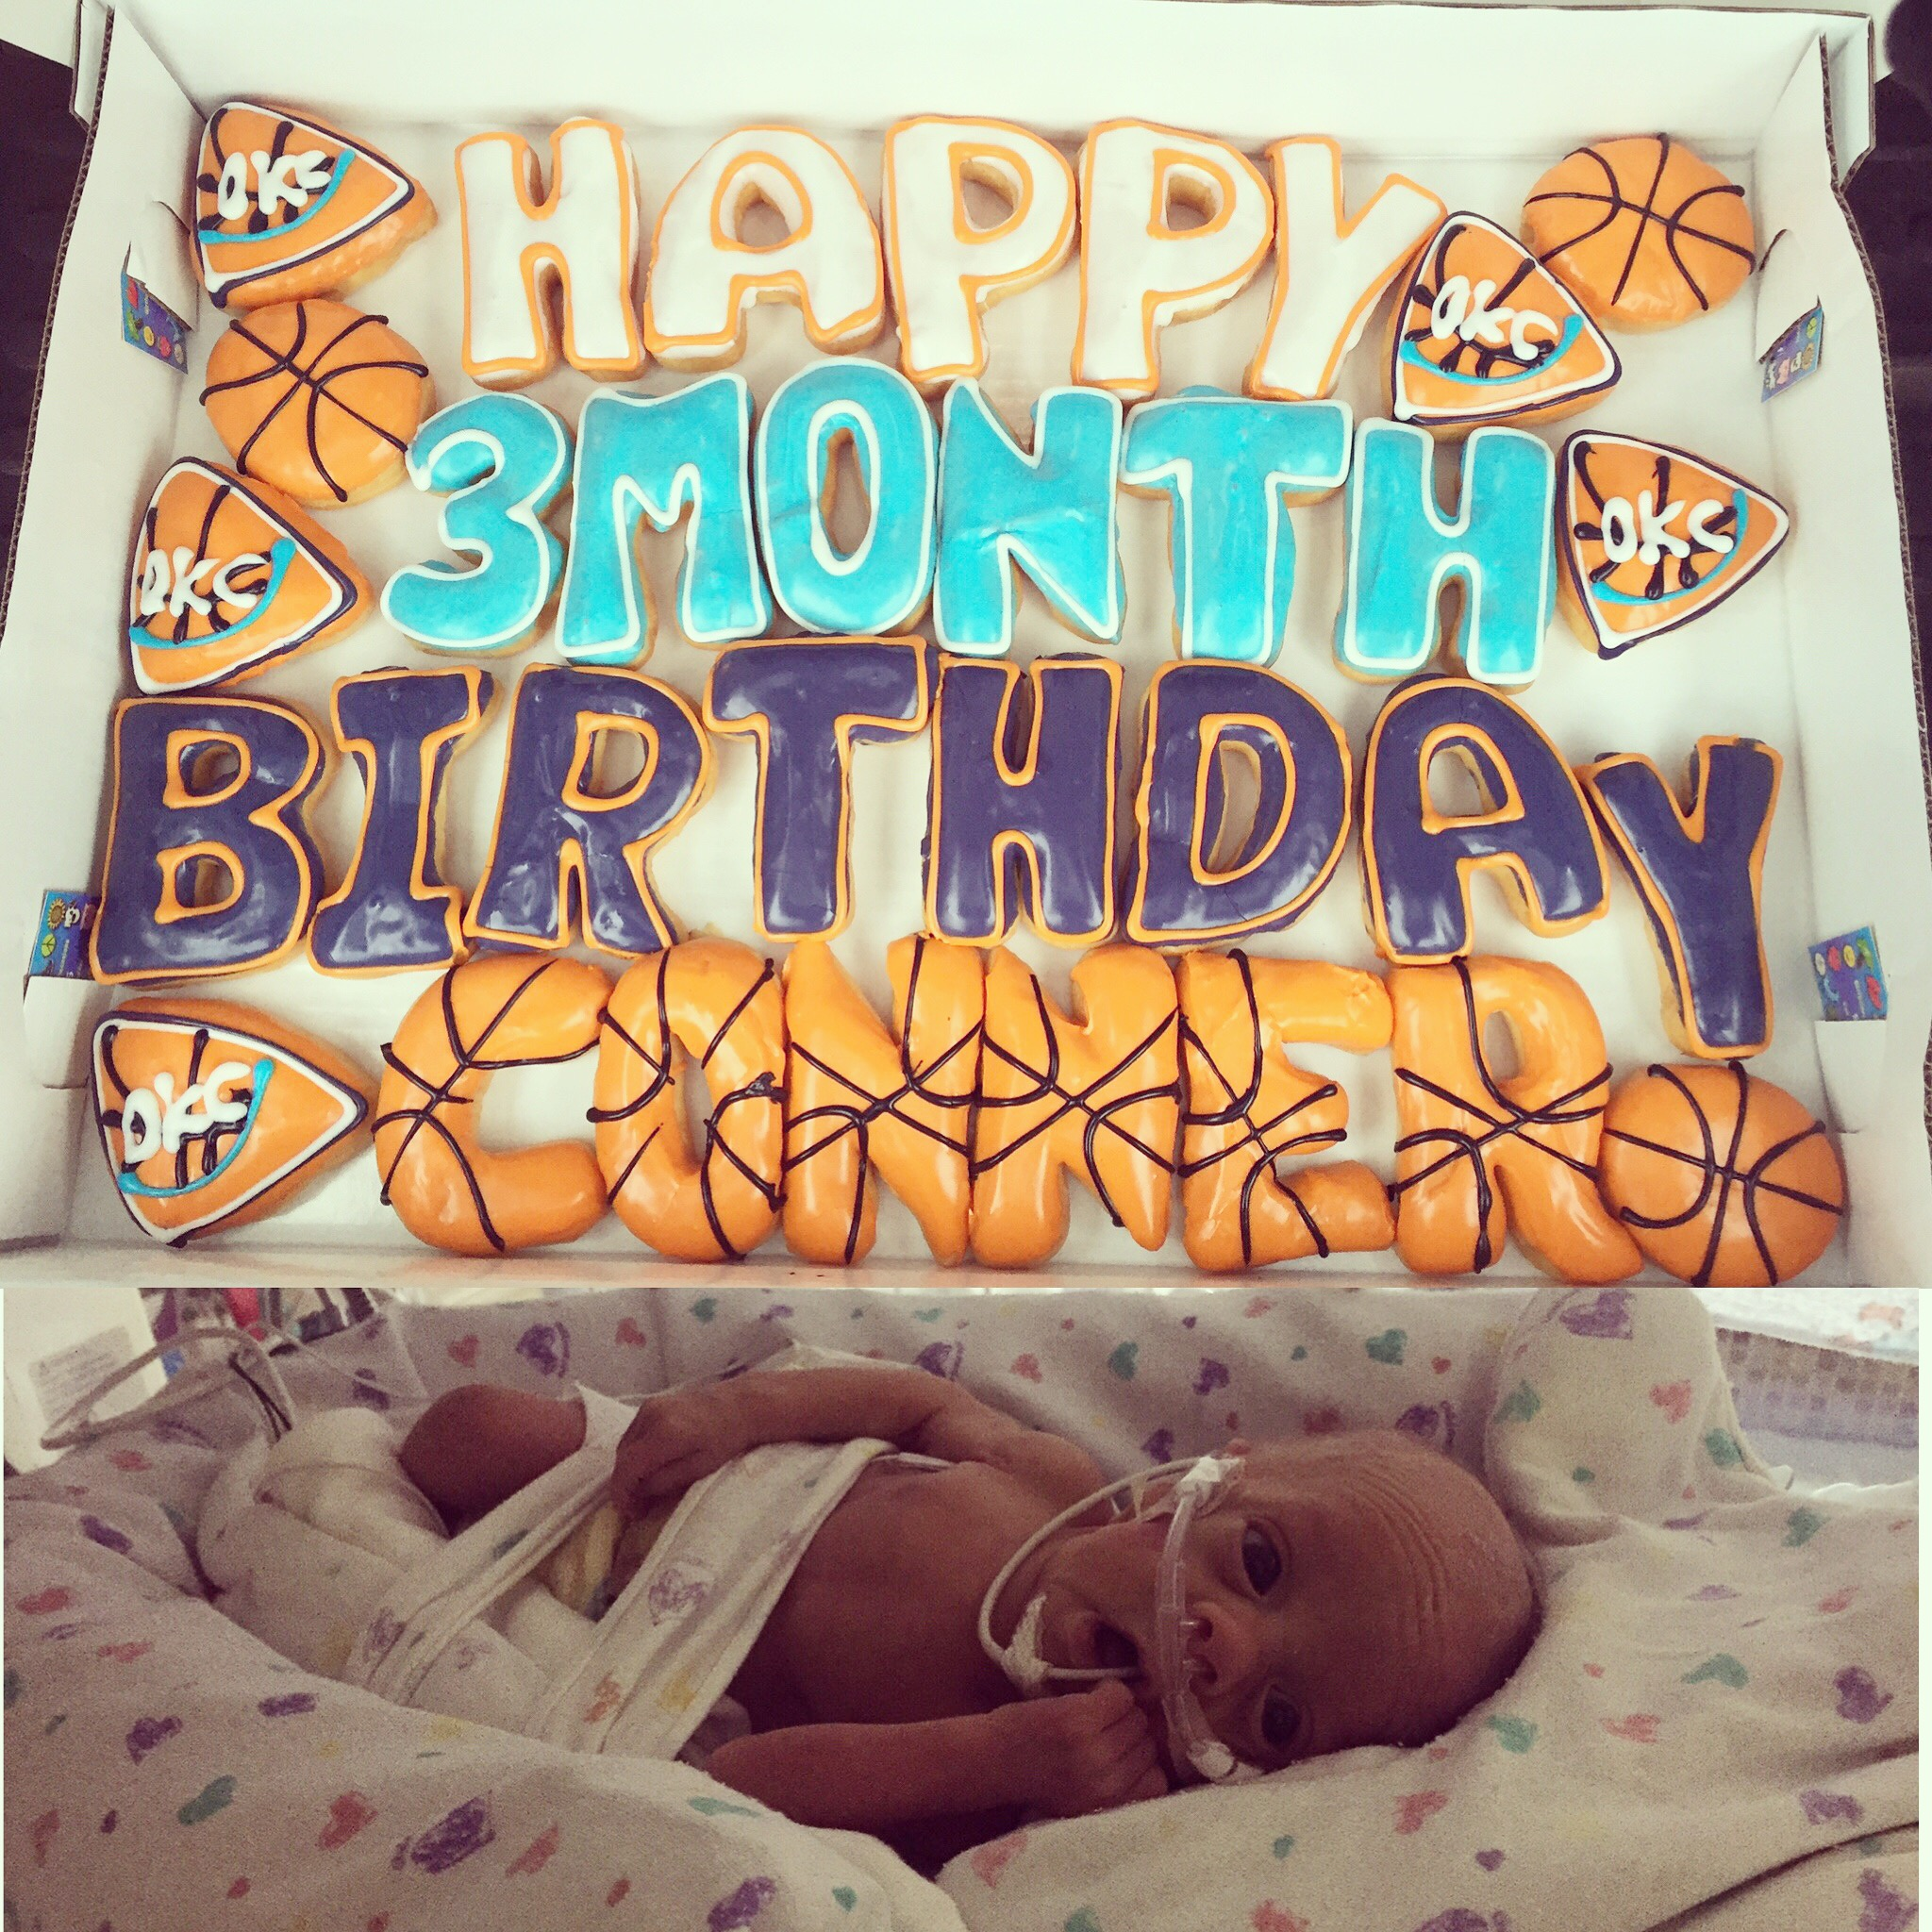 Thunderin' up for Conner's 3rd birthday! His neonatologist is arguably the biggest OKC Thunder fan in the world (no joke)!